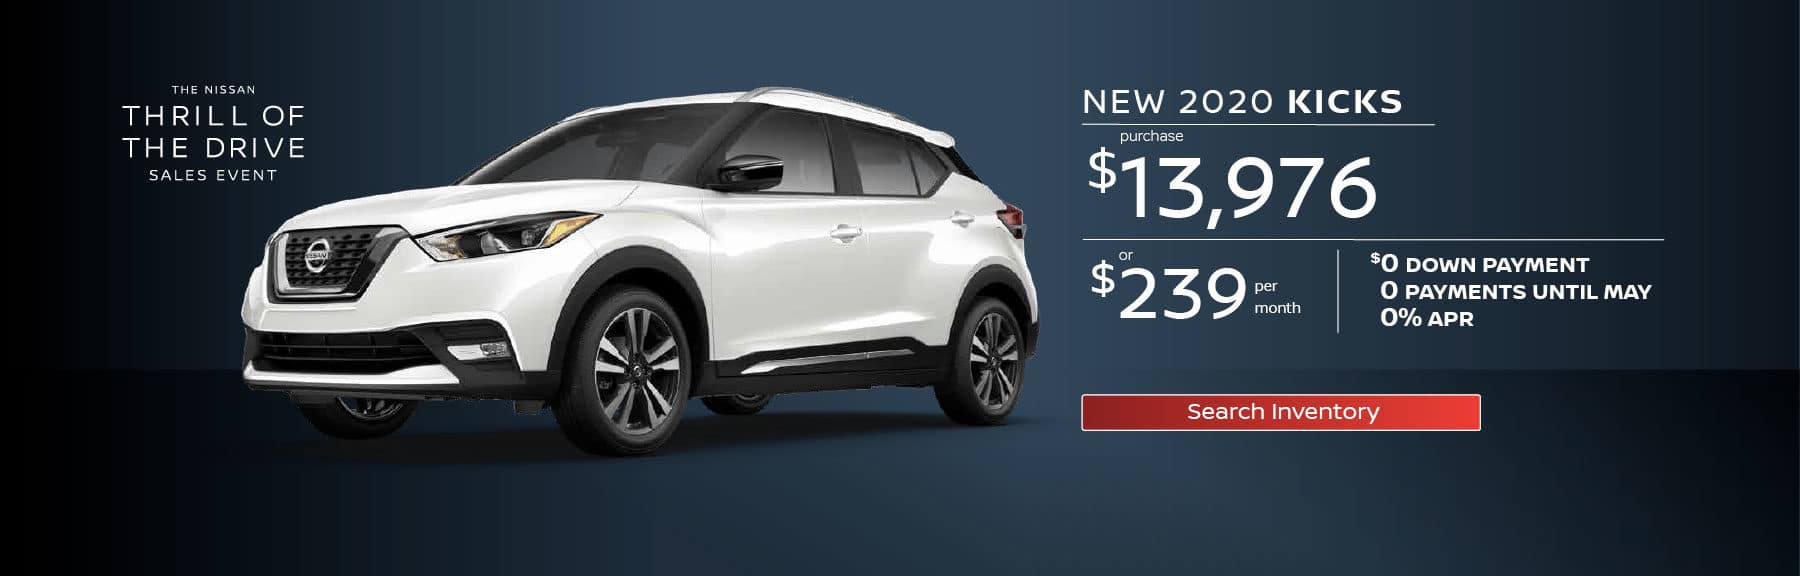 New 2020 Kicks $13,976, or $239 per month, $0 down, 0 payments until May, 0% APR,